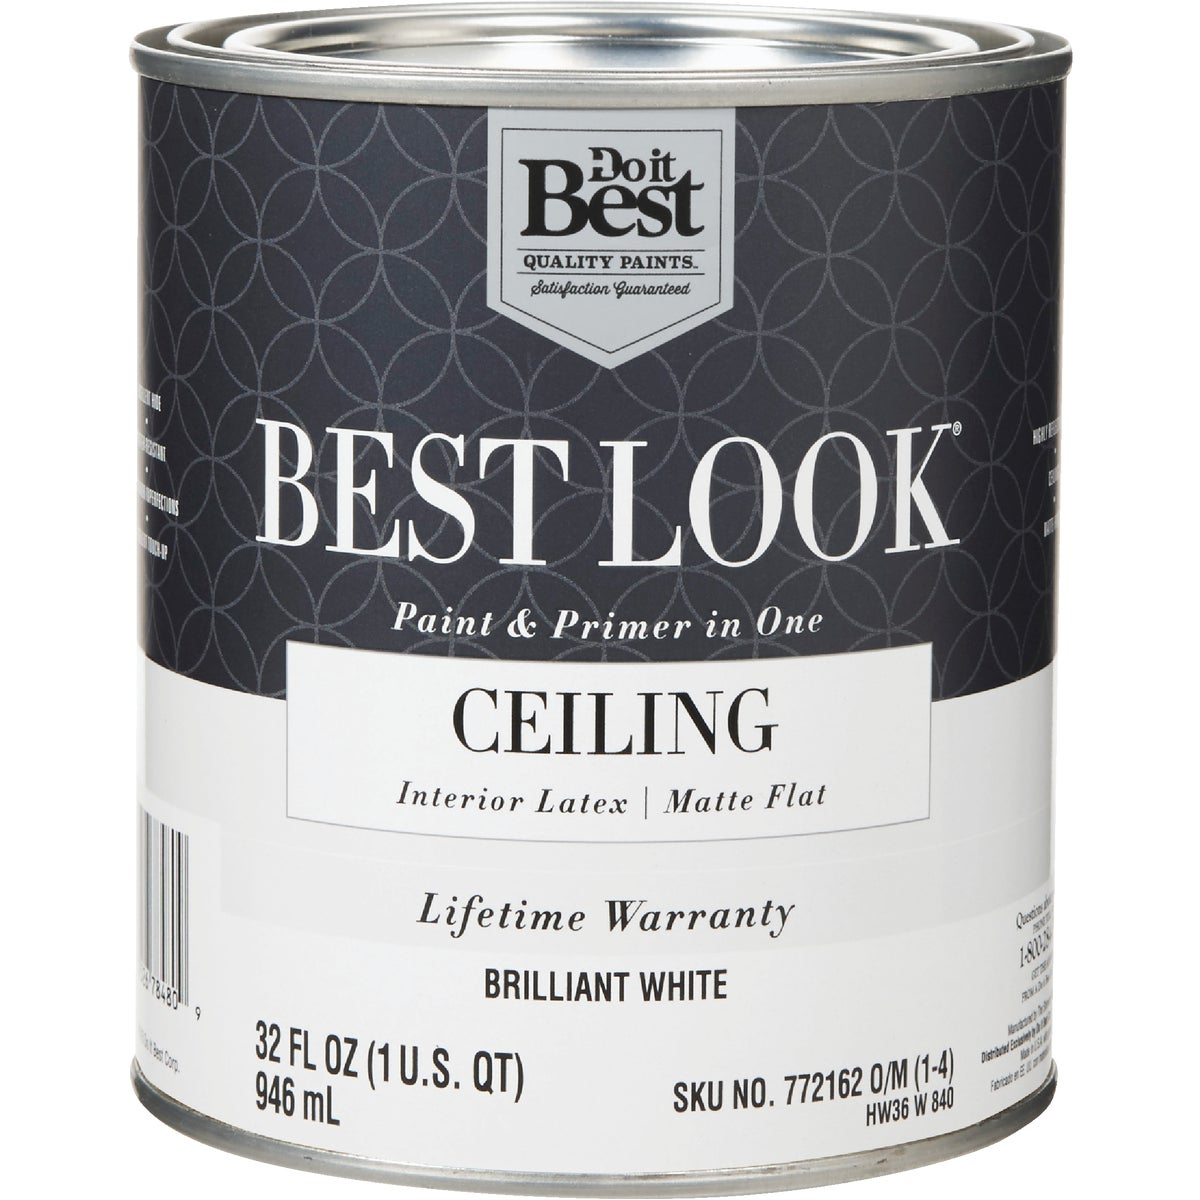 BRLNT WHT CEILING PAINT - HW36W0840-14 by Do it Best